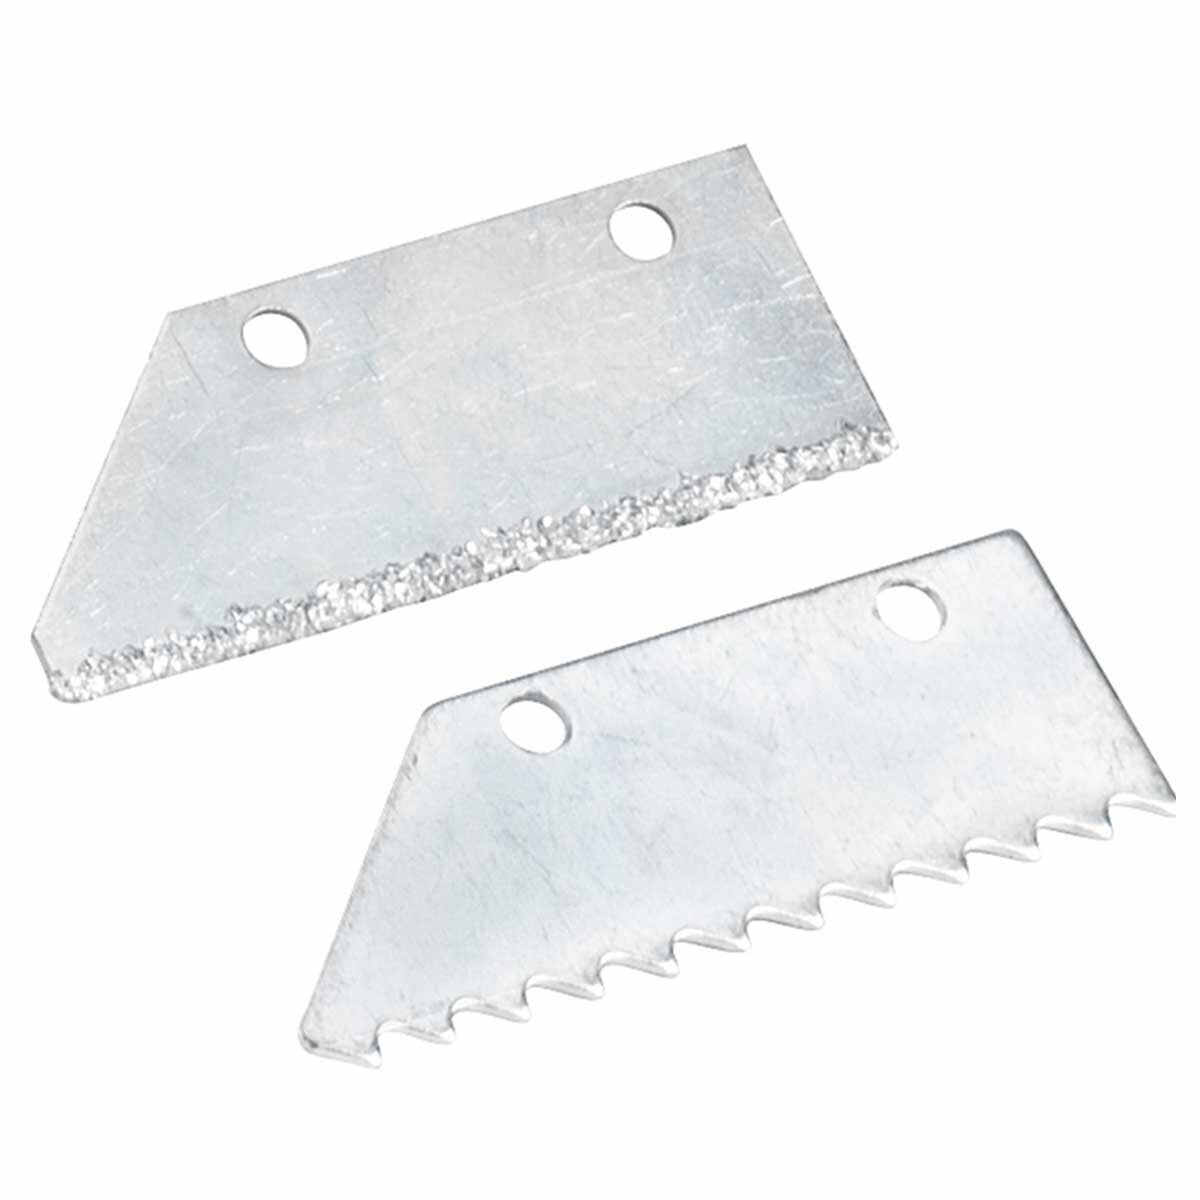 grout saw with 1 carbide grit-edge and 1 steel tooth blade Use 2 blades for floor grout removal, 1 blade for walls